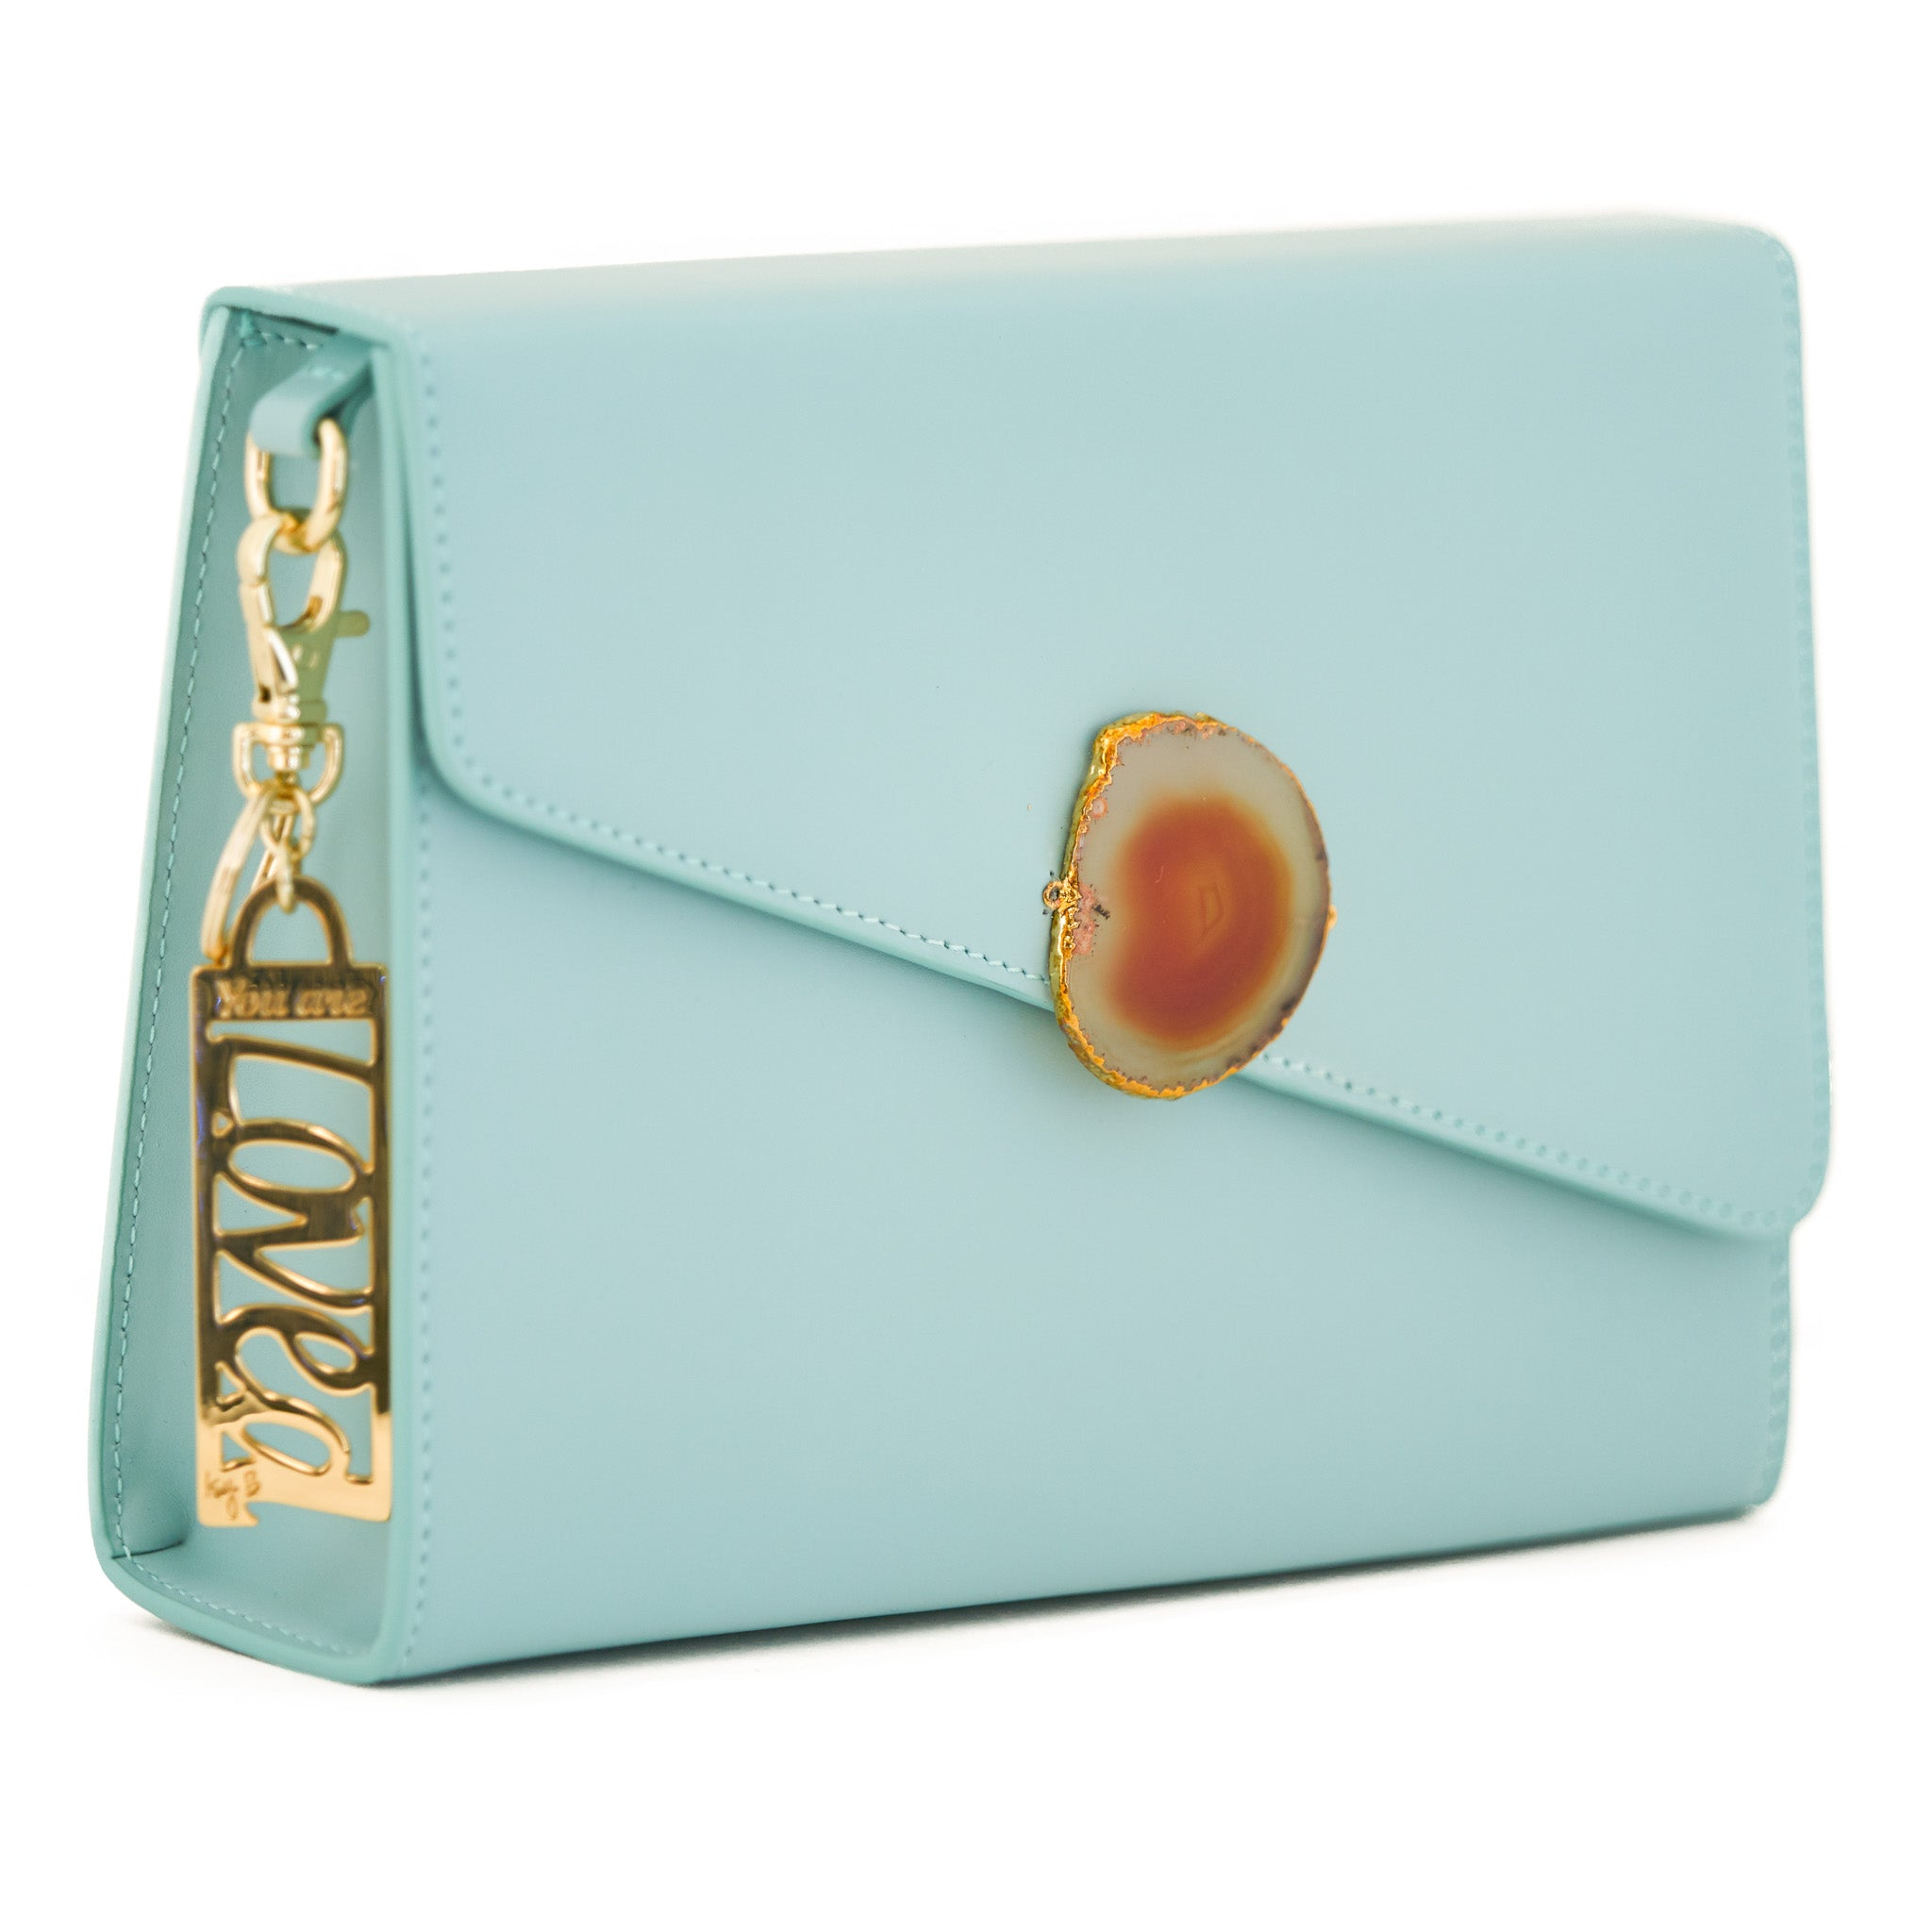 Loved Bag - Aquamarine Leather with Yellow Agate